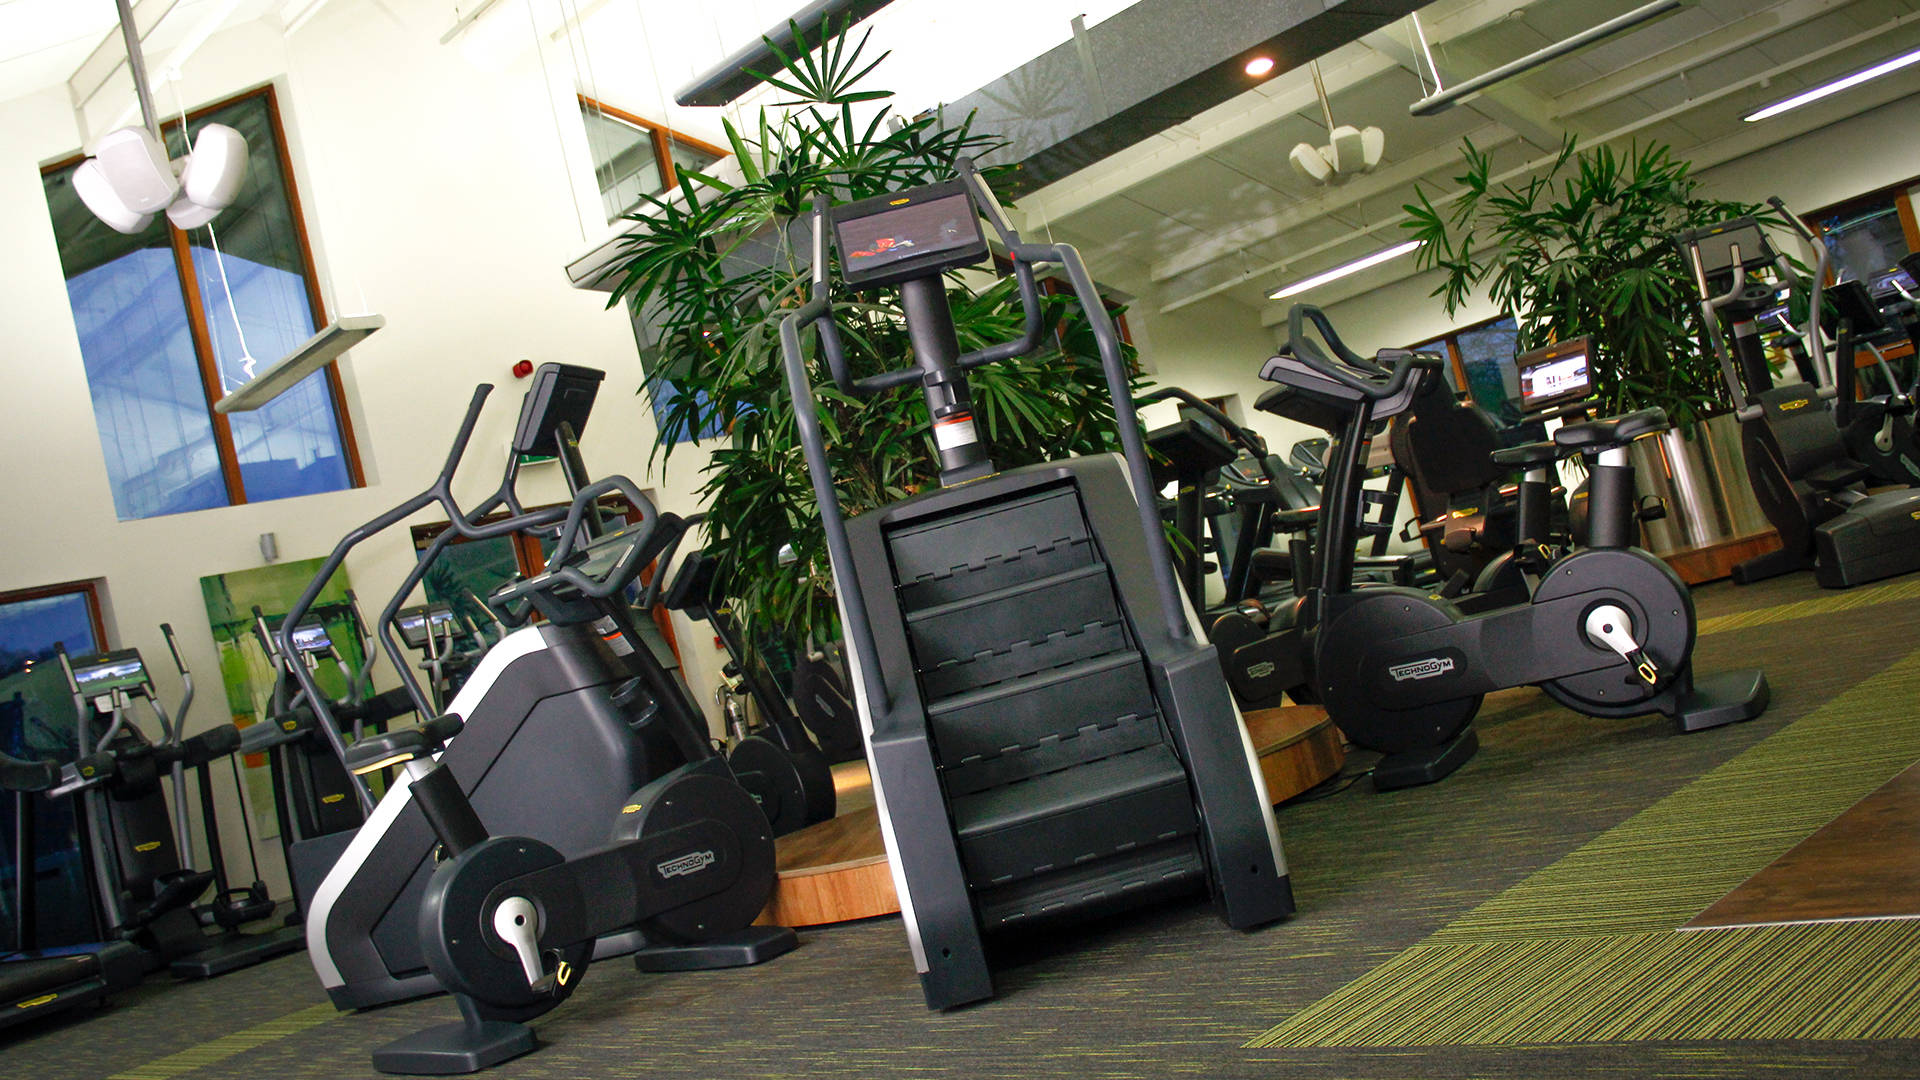 Benton Hall Golf and Country Club's technogym cardiovascular equipment